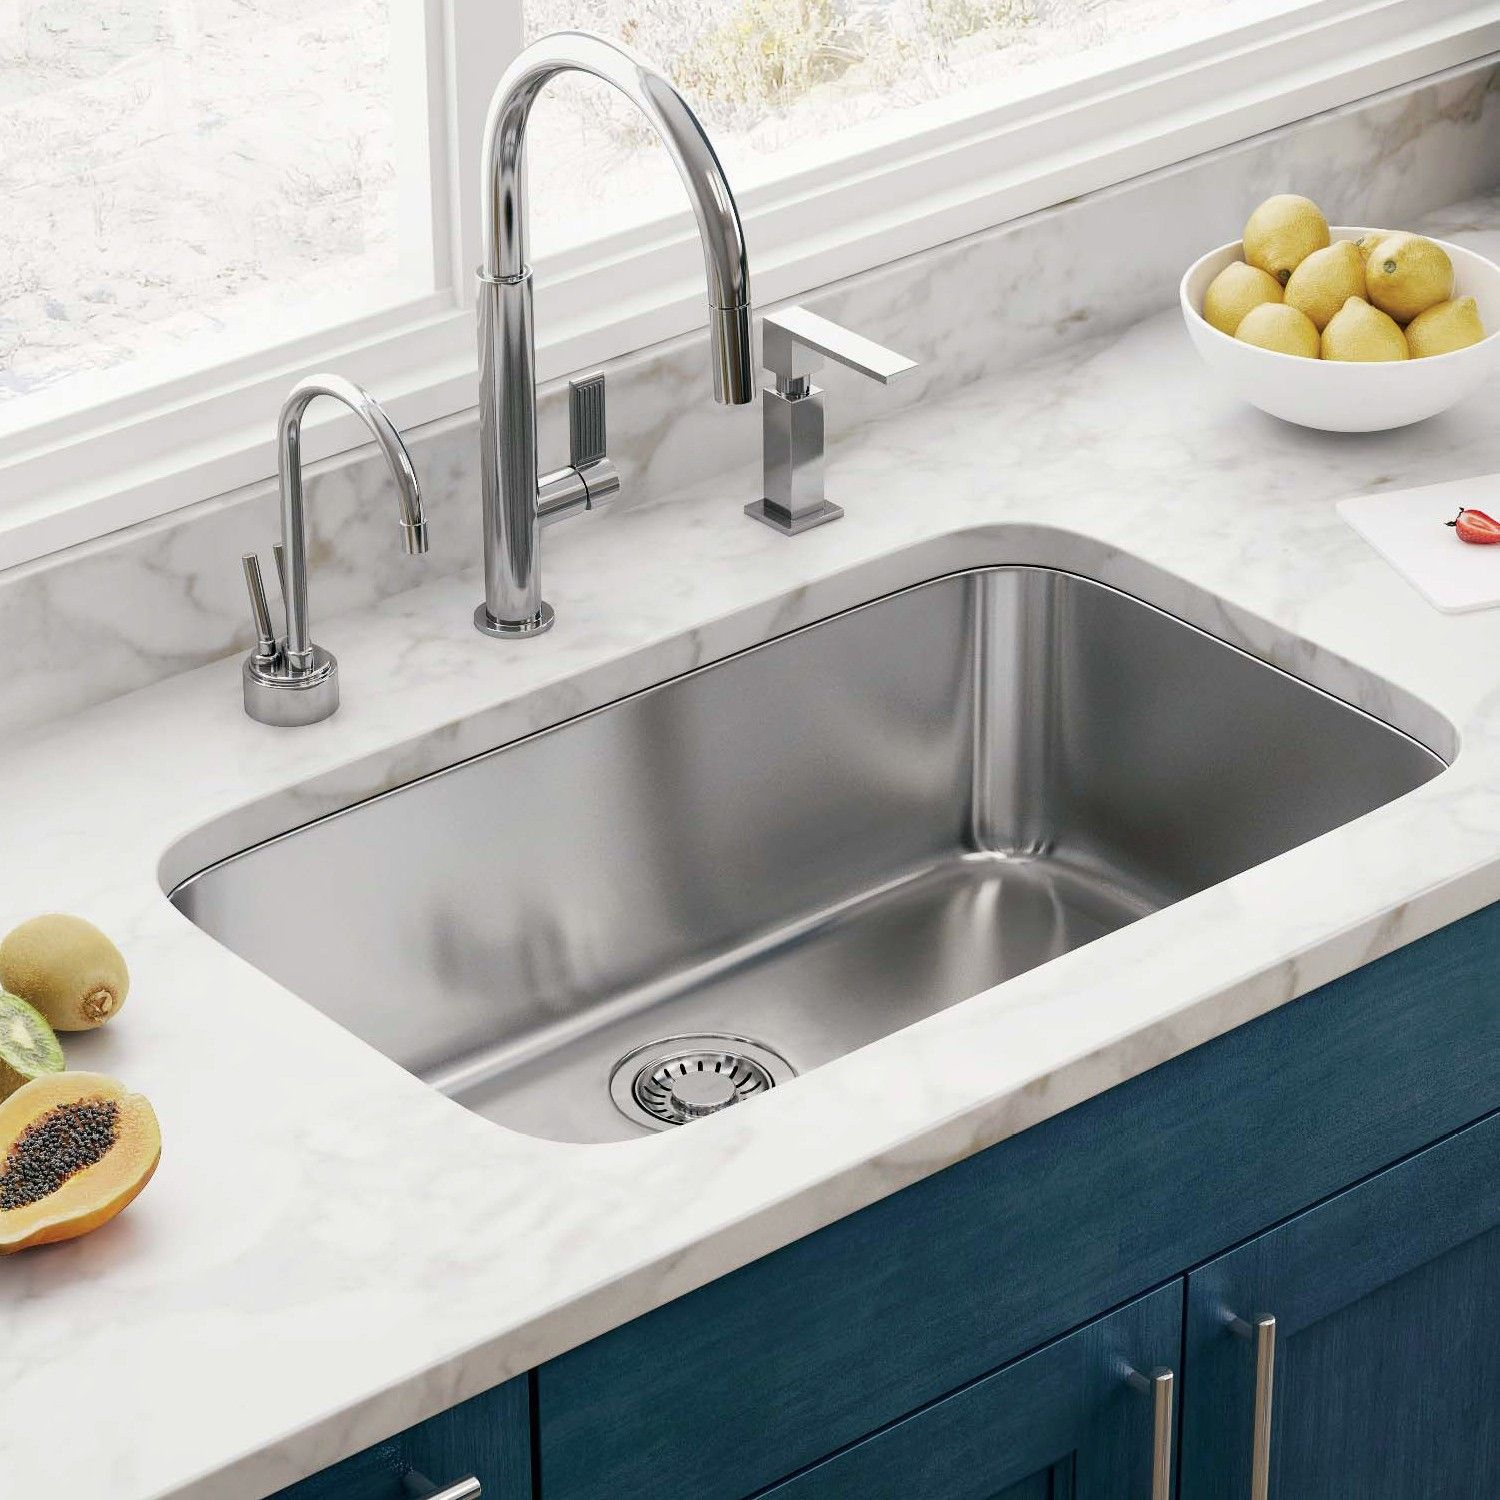 Pin Ybath On Modern Kitchen Sinks In 2019 Modern Kitchen Sinks